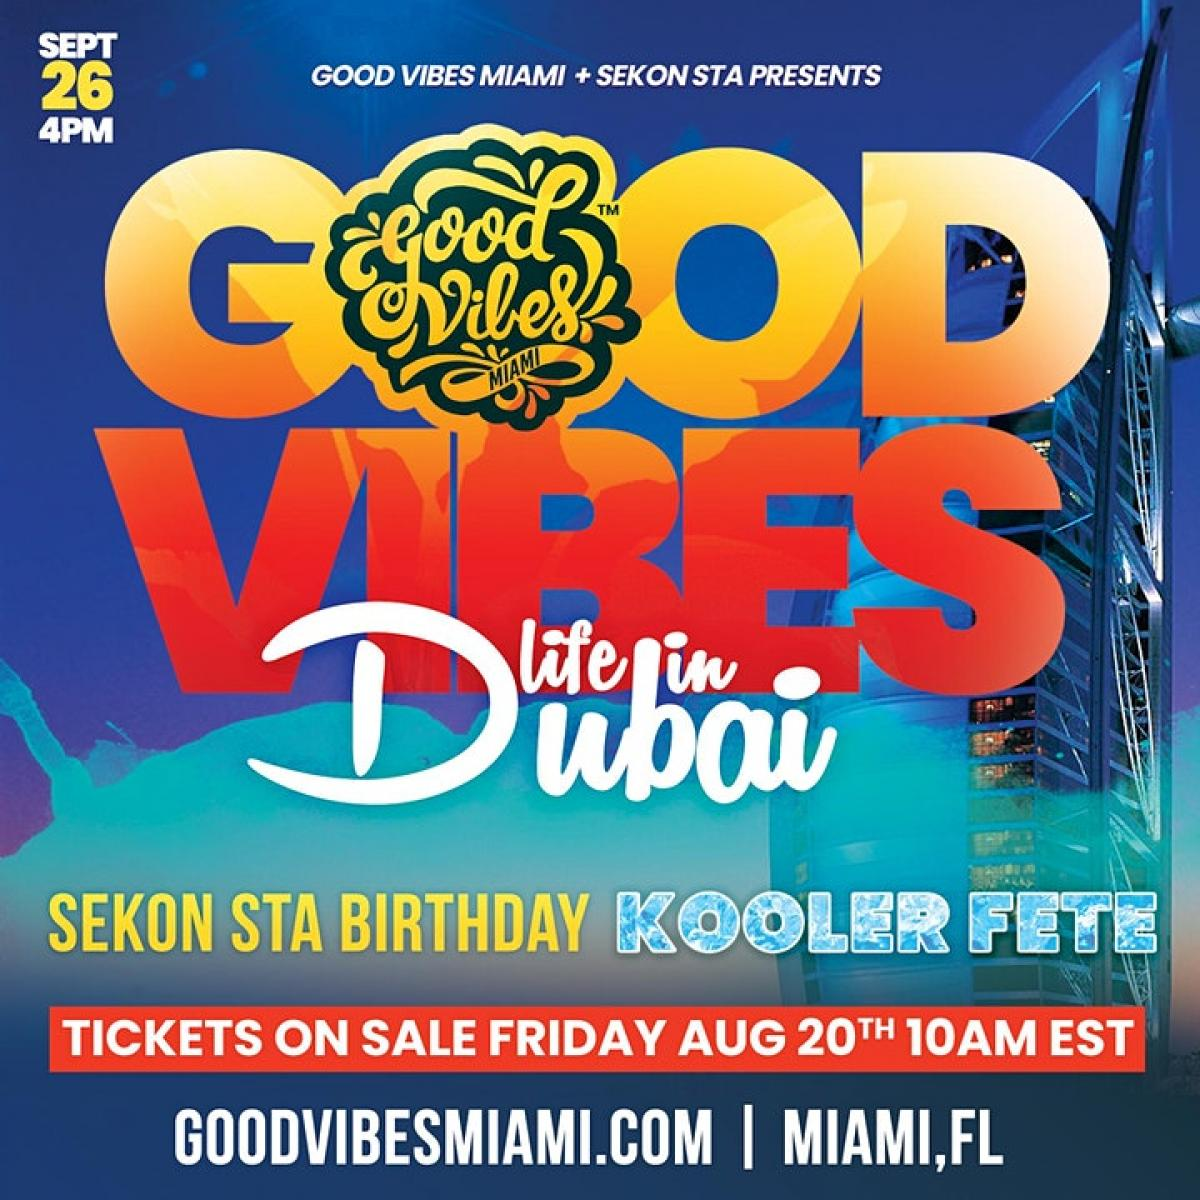 Good Vibes: Life in Dubai flyer or graphic.